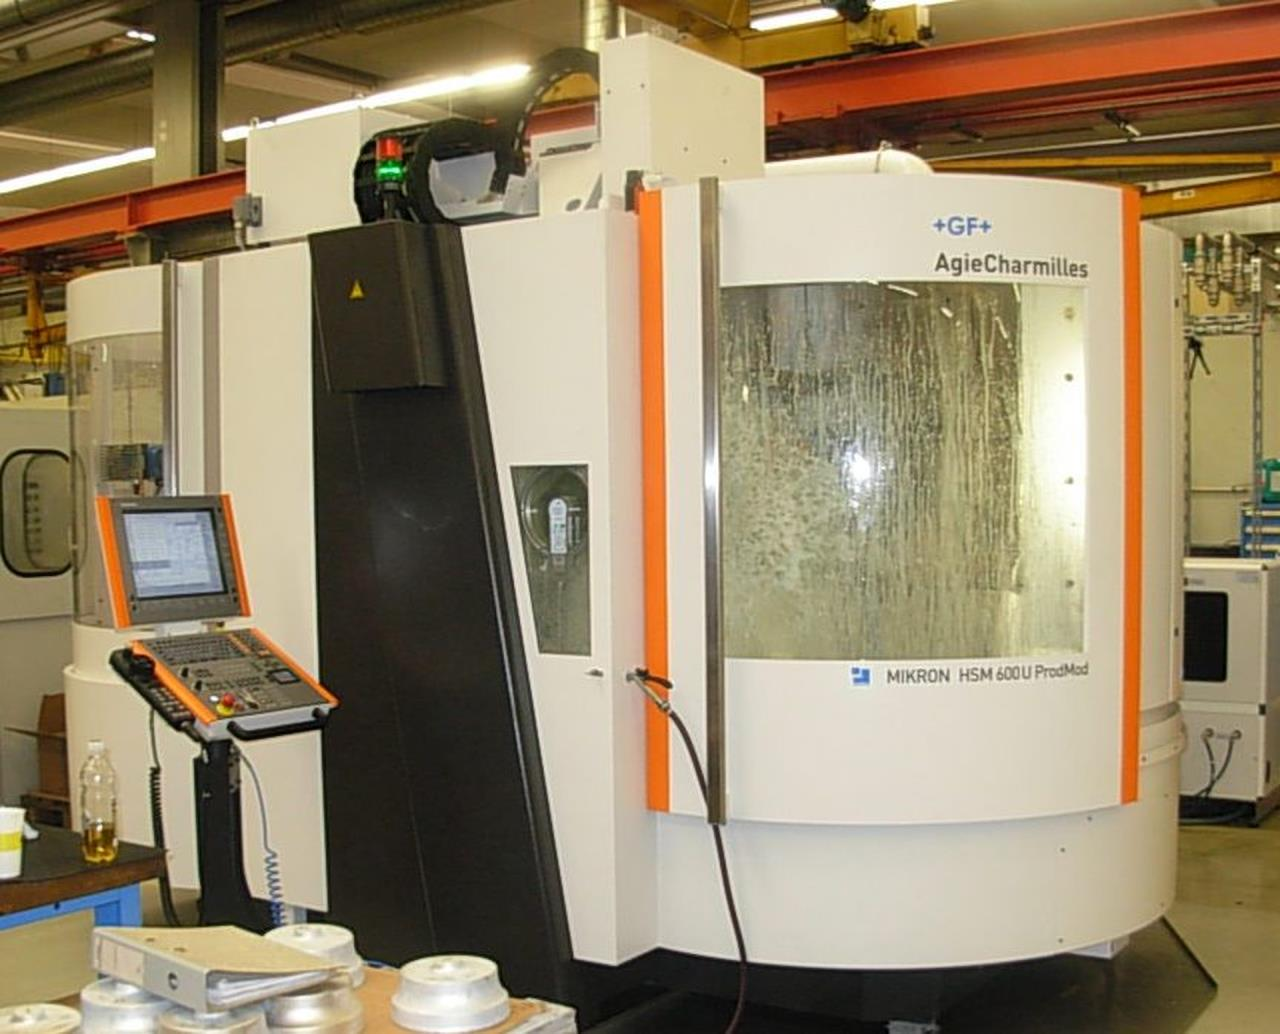 CNC-High speed milling machine MIKRON HSM 600U Prod Mod